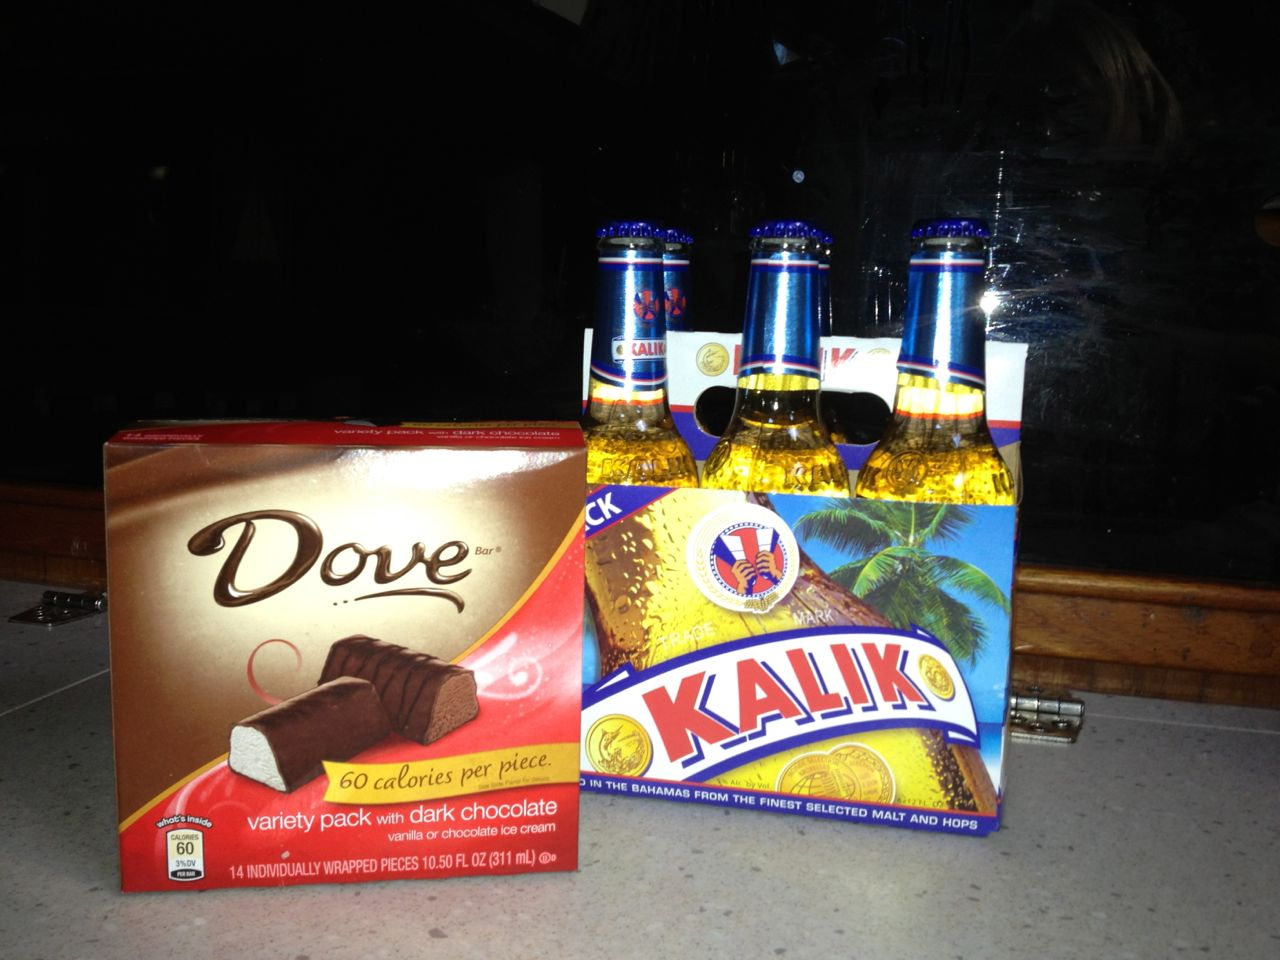 We both a box of Dove mini ice creams, our favorite indulgence, and a 6-pack of Bahama beer, Kalik. The best of both worlds!